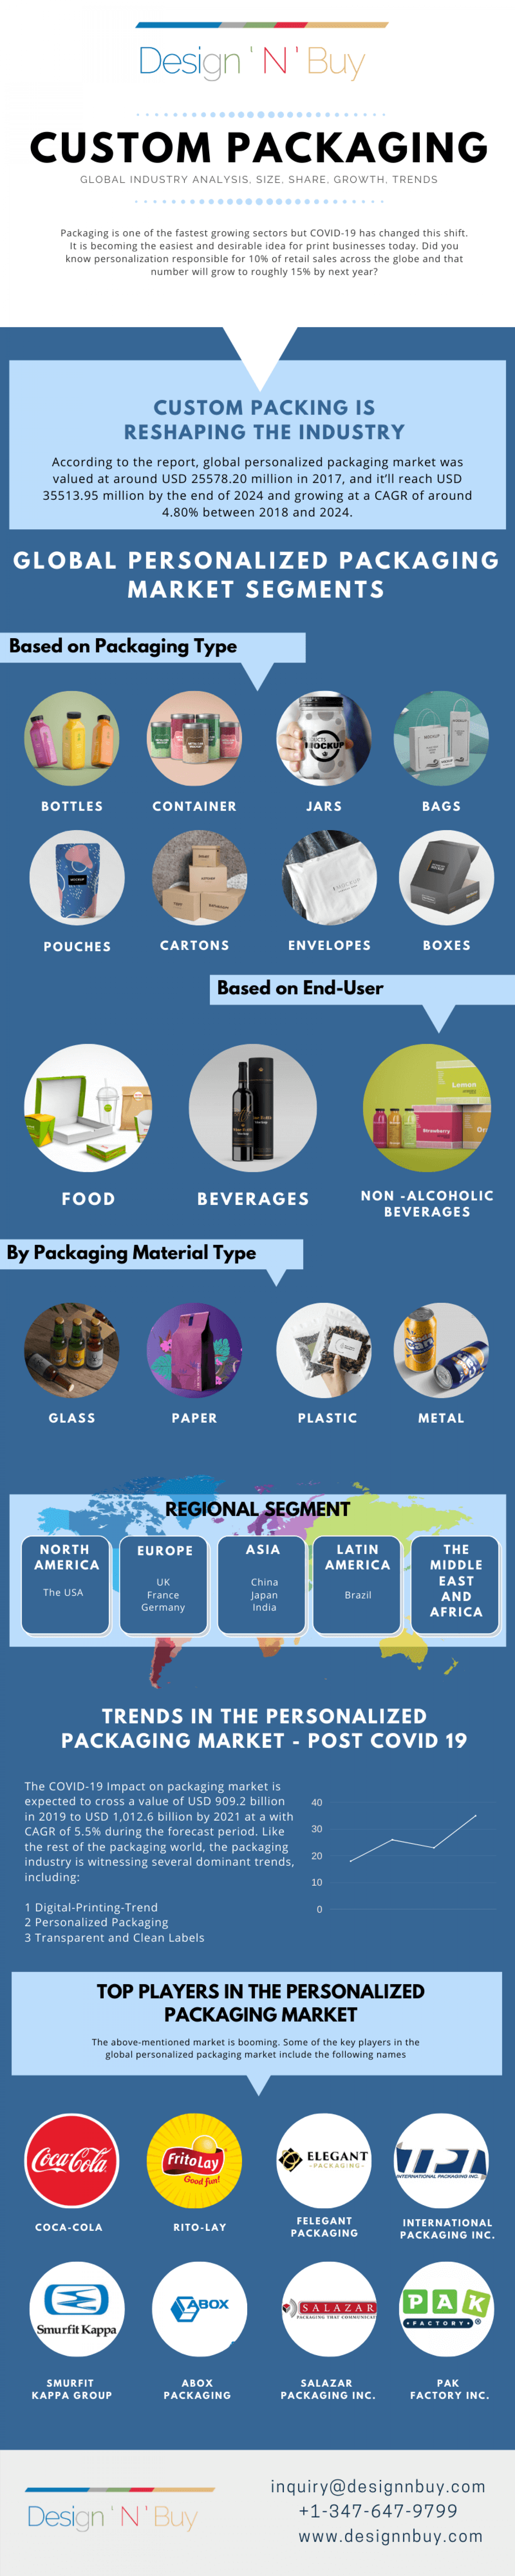 How Custom Packaging is Reshaping the Industry Infographic